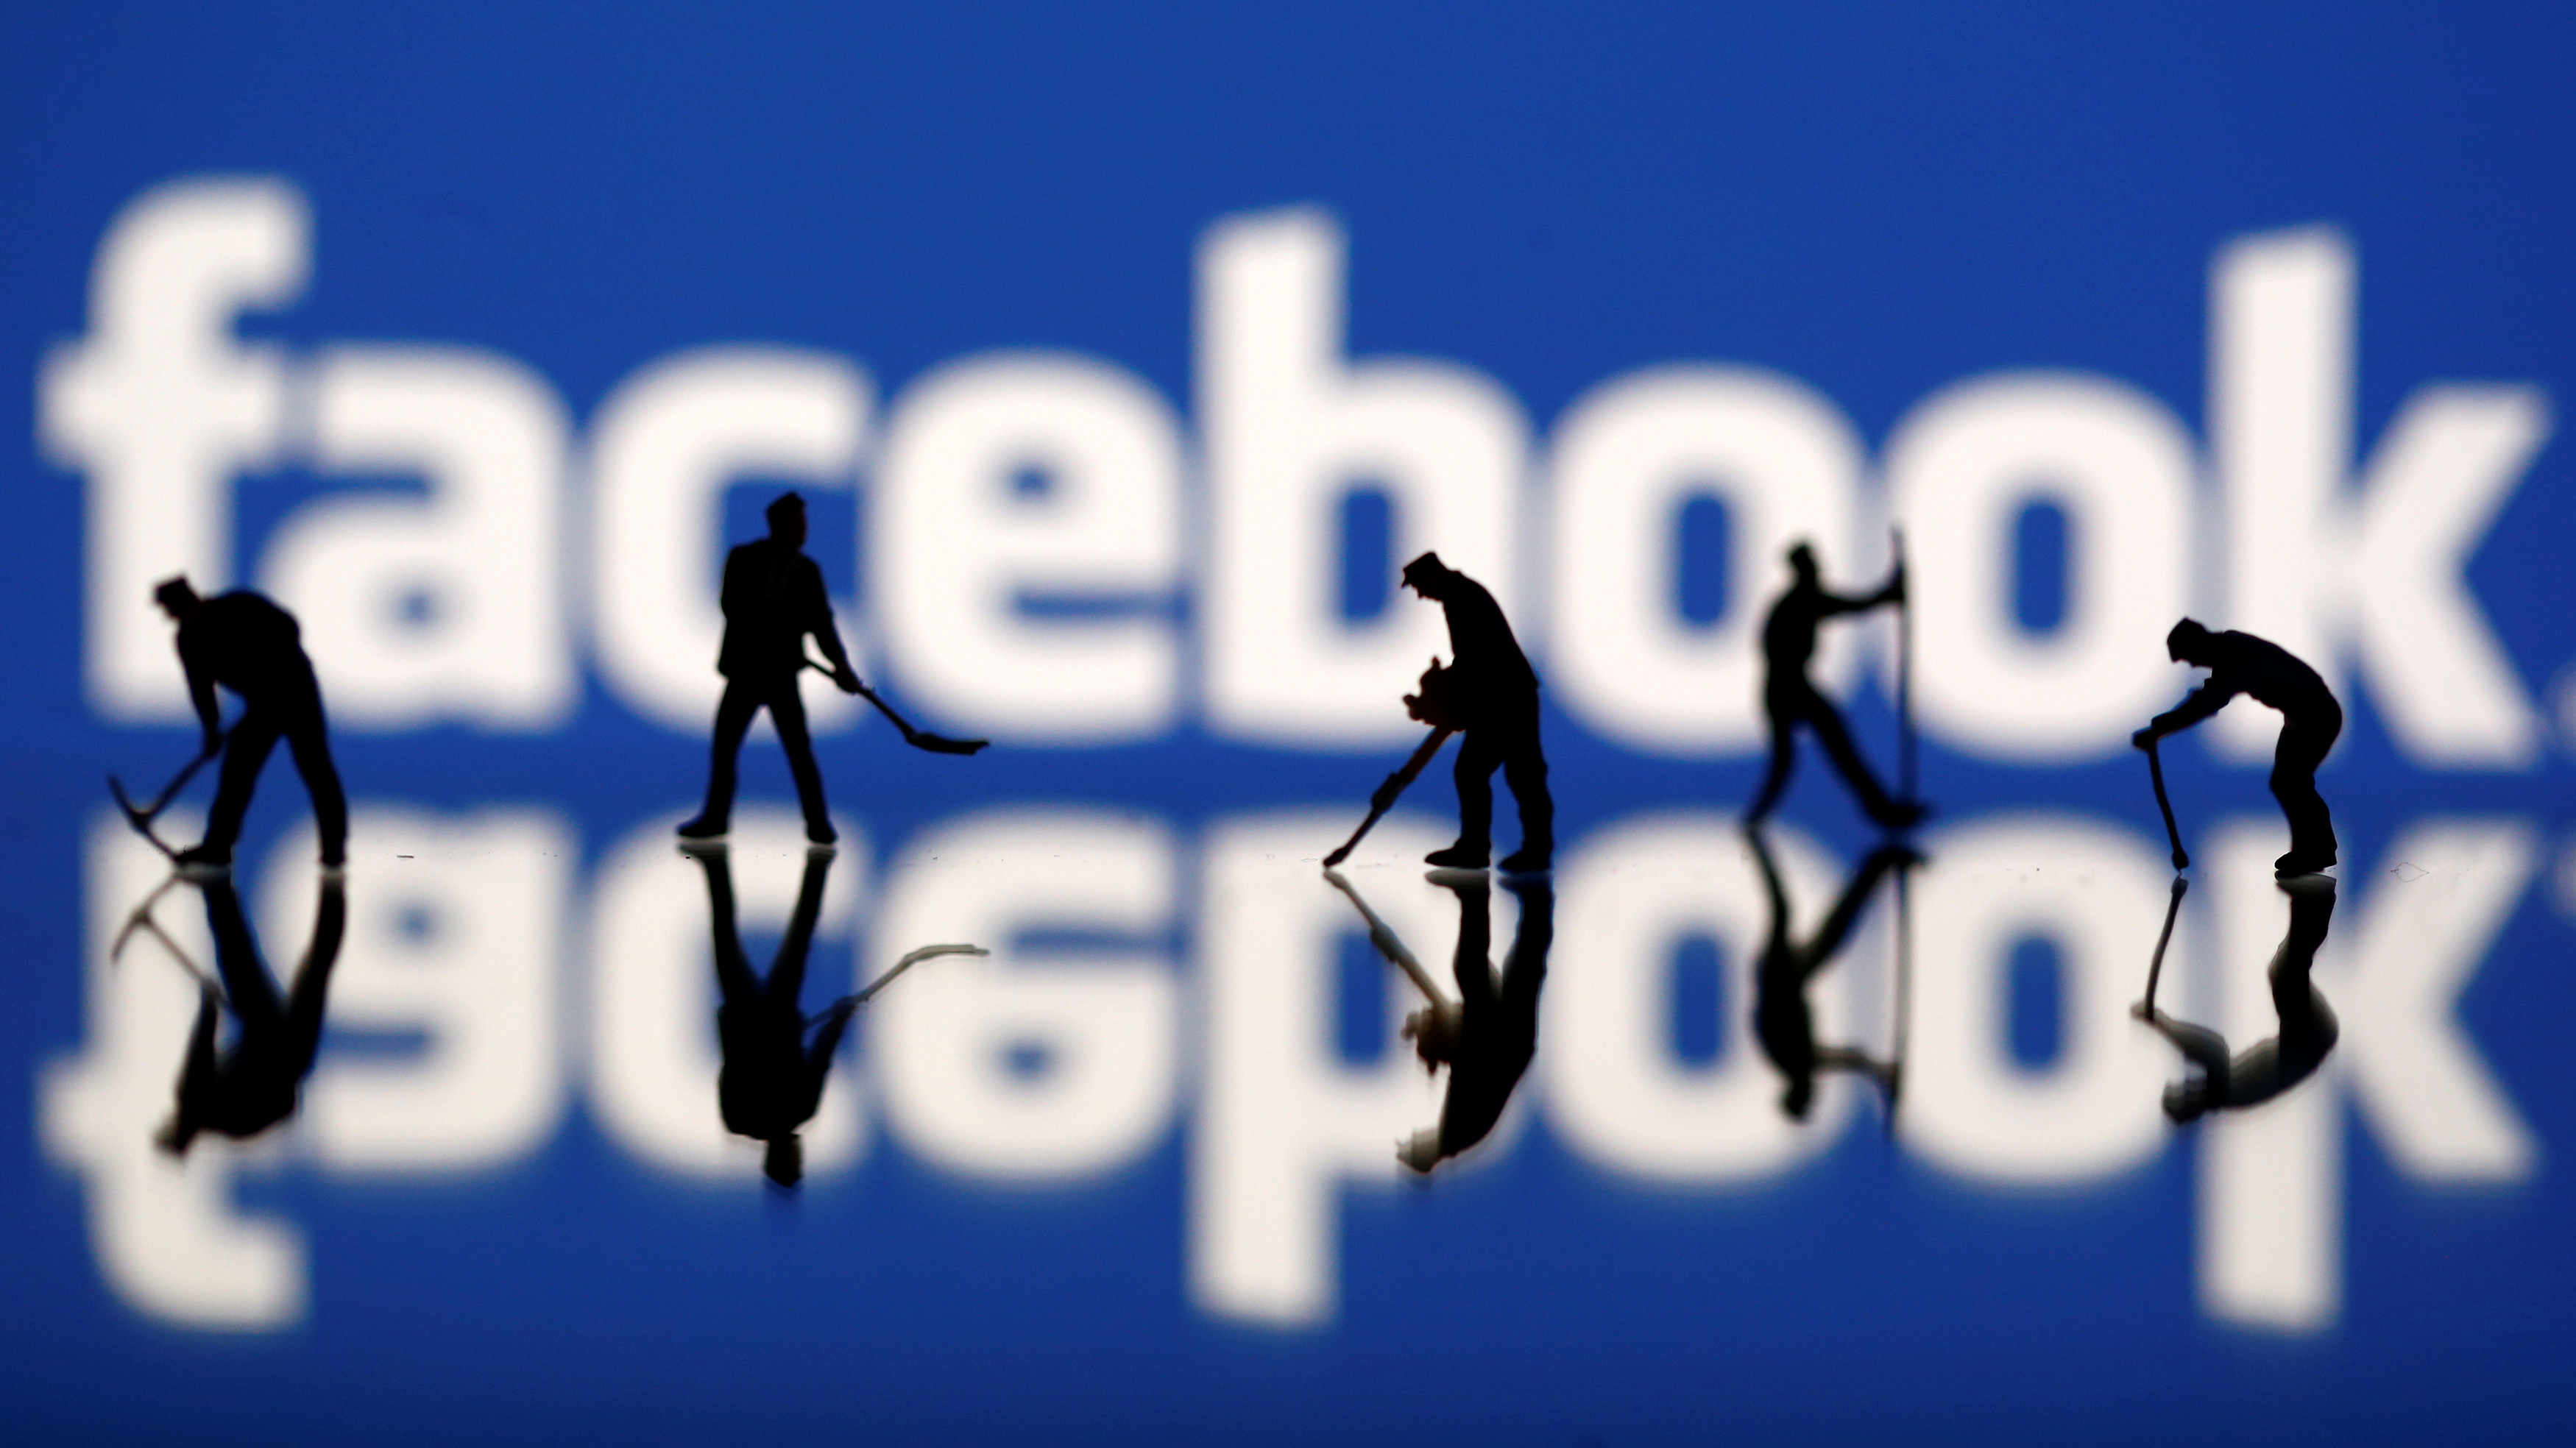 Figurines are seen in front of the Facebook logo in this illustration taken March 20, 2018. REUTERS/Dado Ruvic - RC190C231590